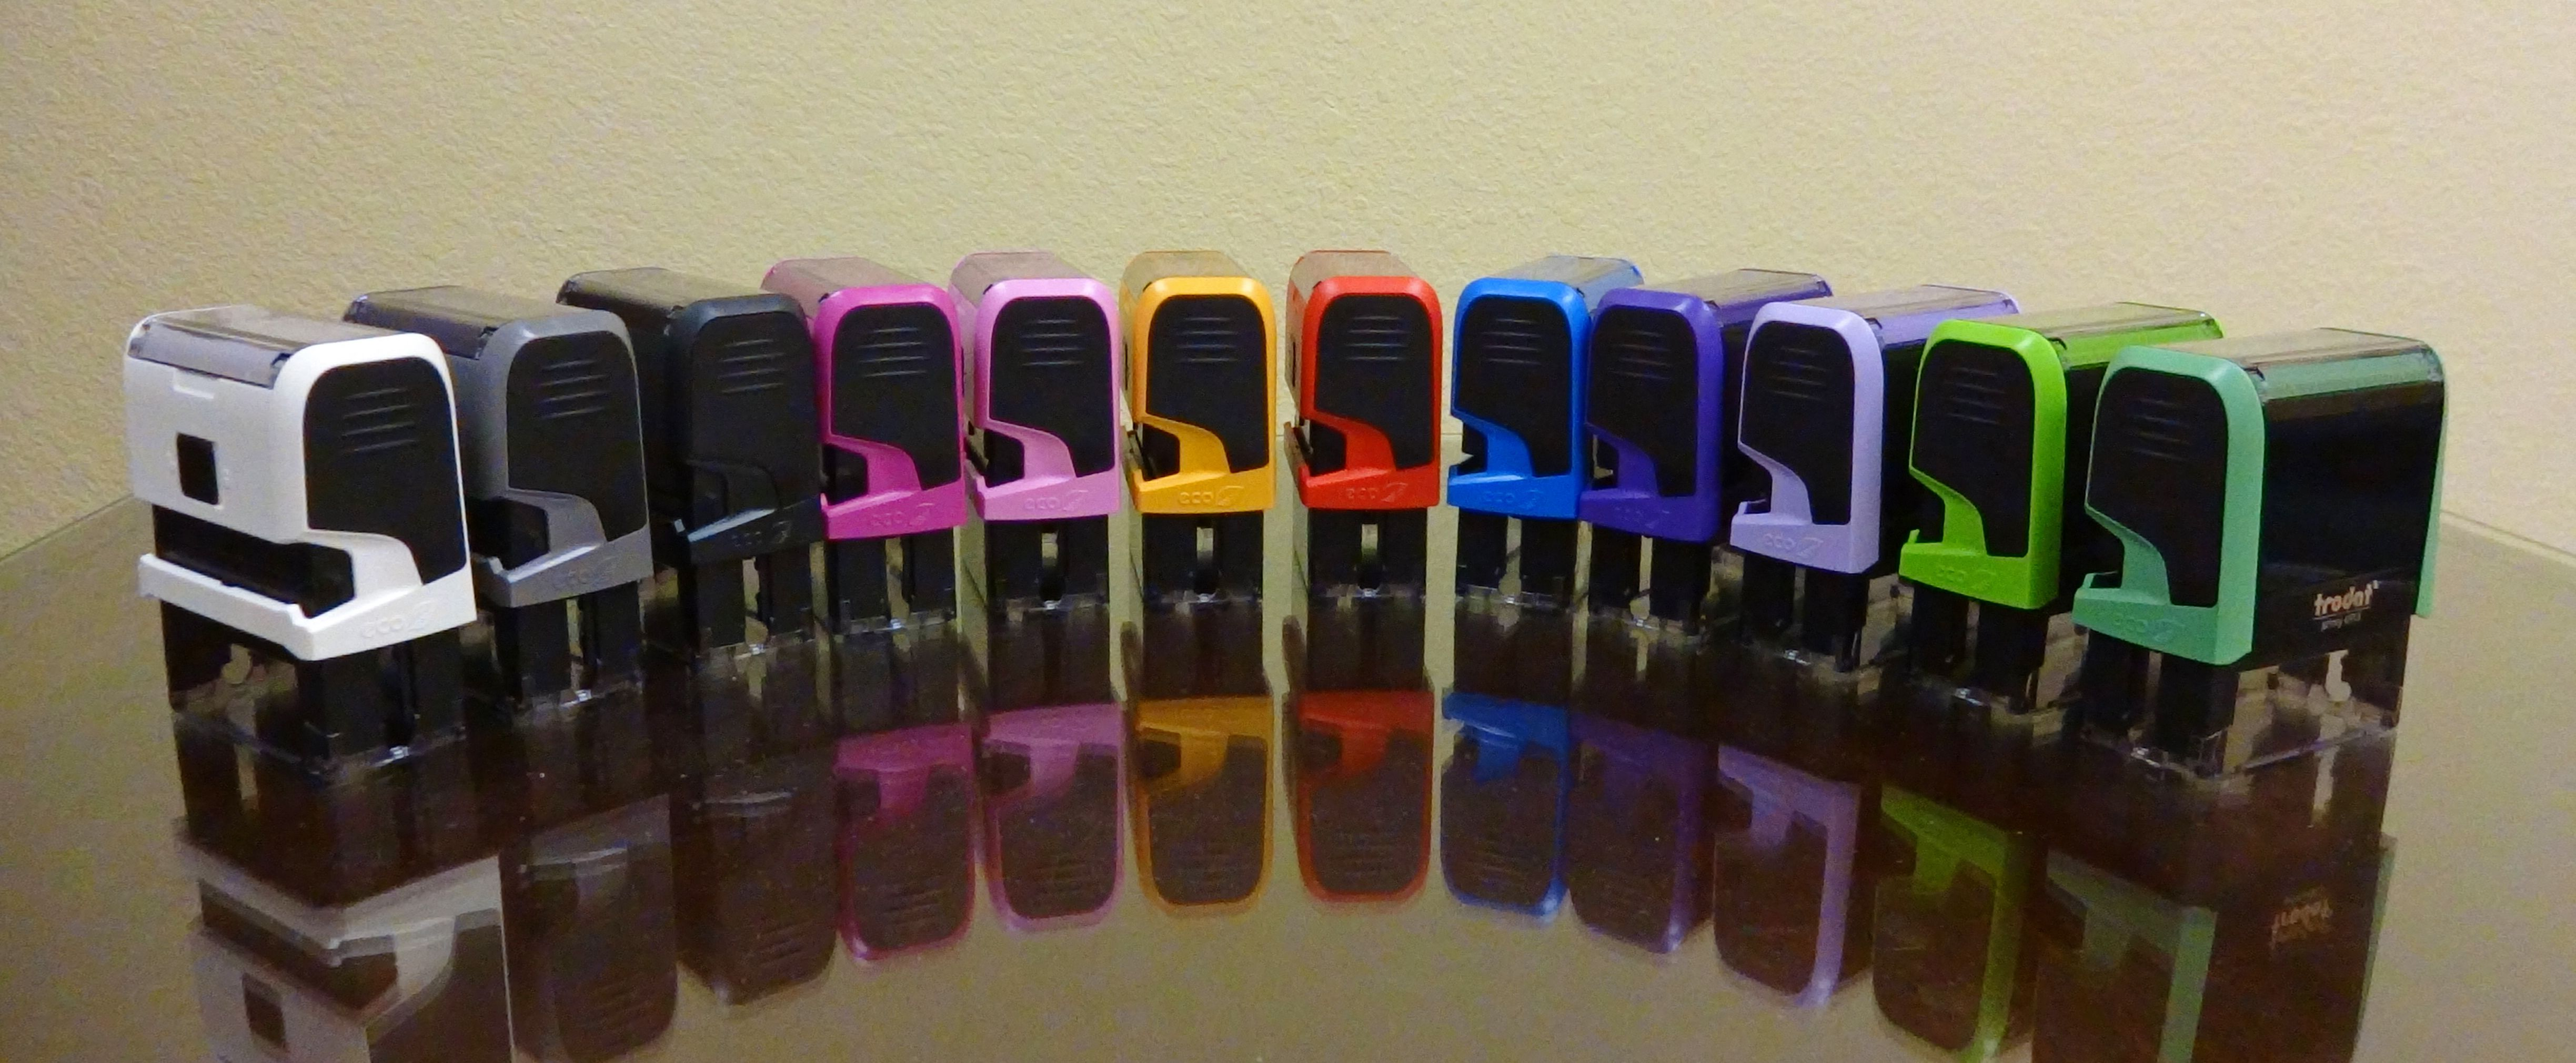 Decisions Decisions Why Npu Loves The Trodat Notary Stamp Color Options We Offer The Trodat Notary Stamp In All Of Our Not Notary Notary Stamp Notary Public